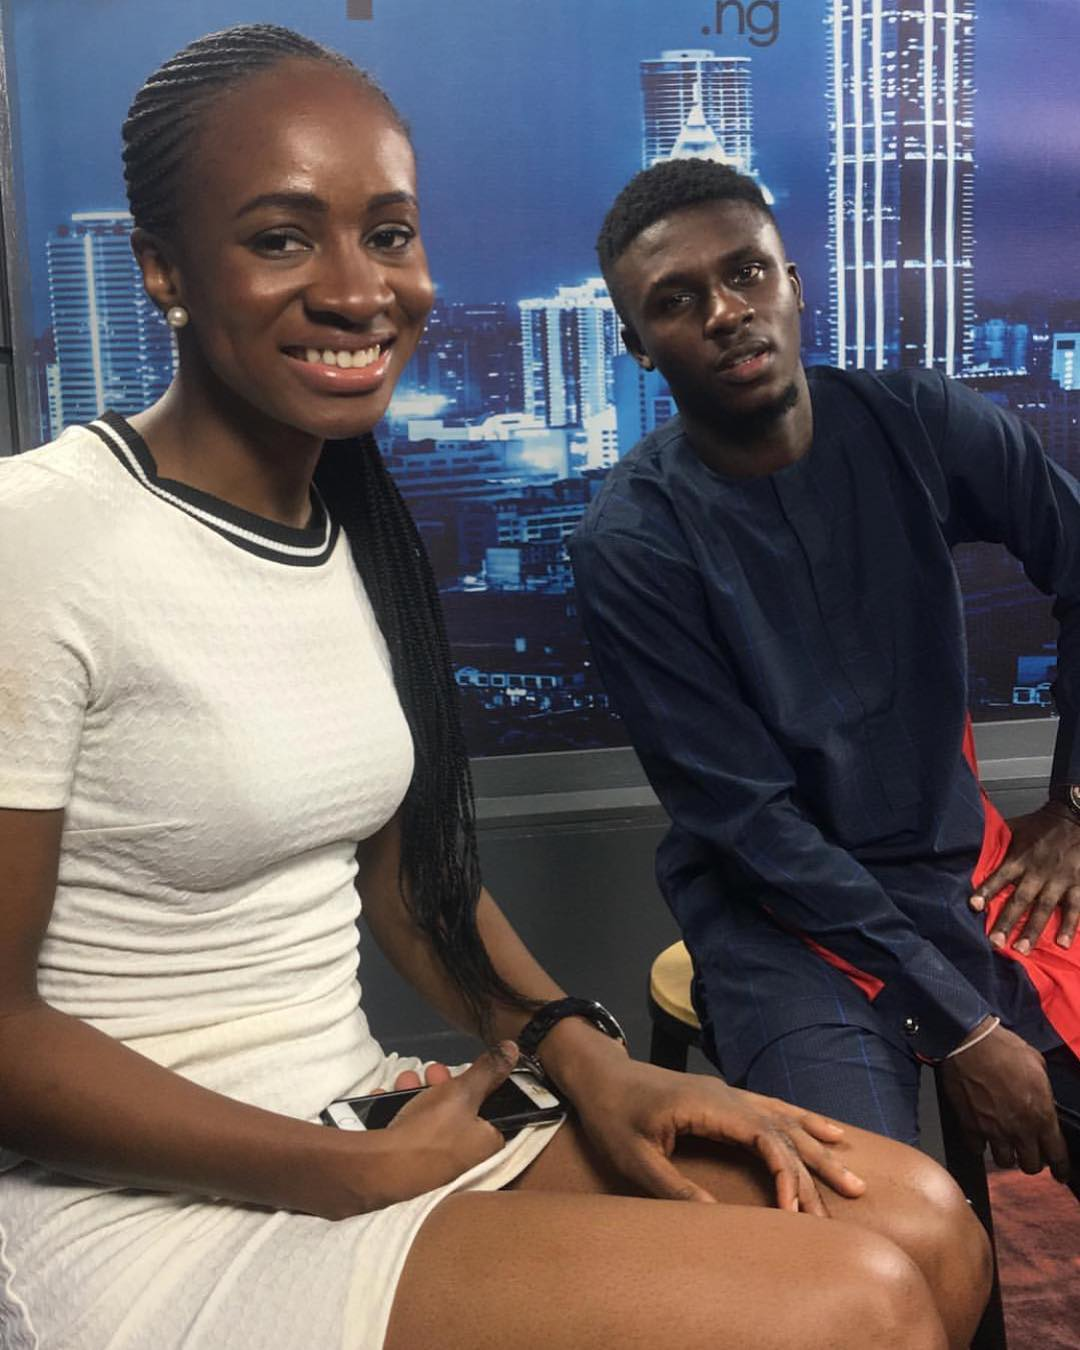 BBNaija 2018 Day 79: Evicted Housemates Lolu and Anto rock together - Video